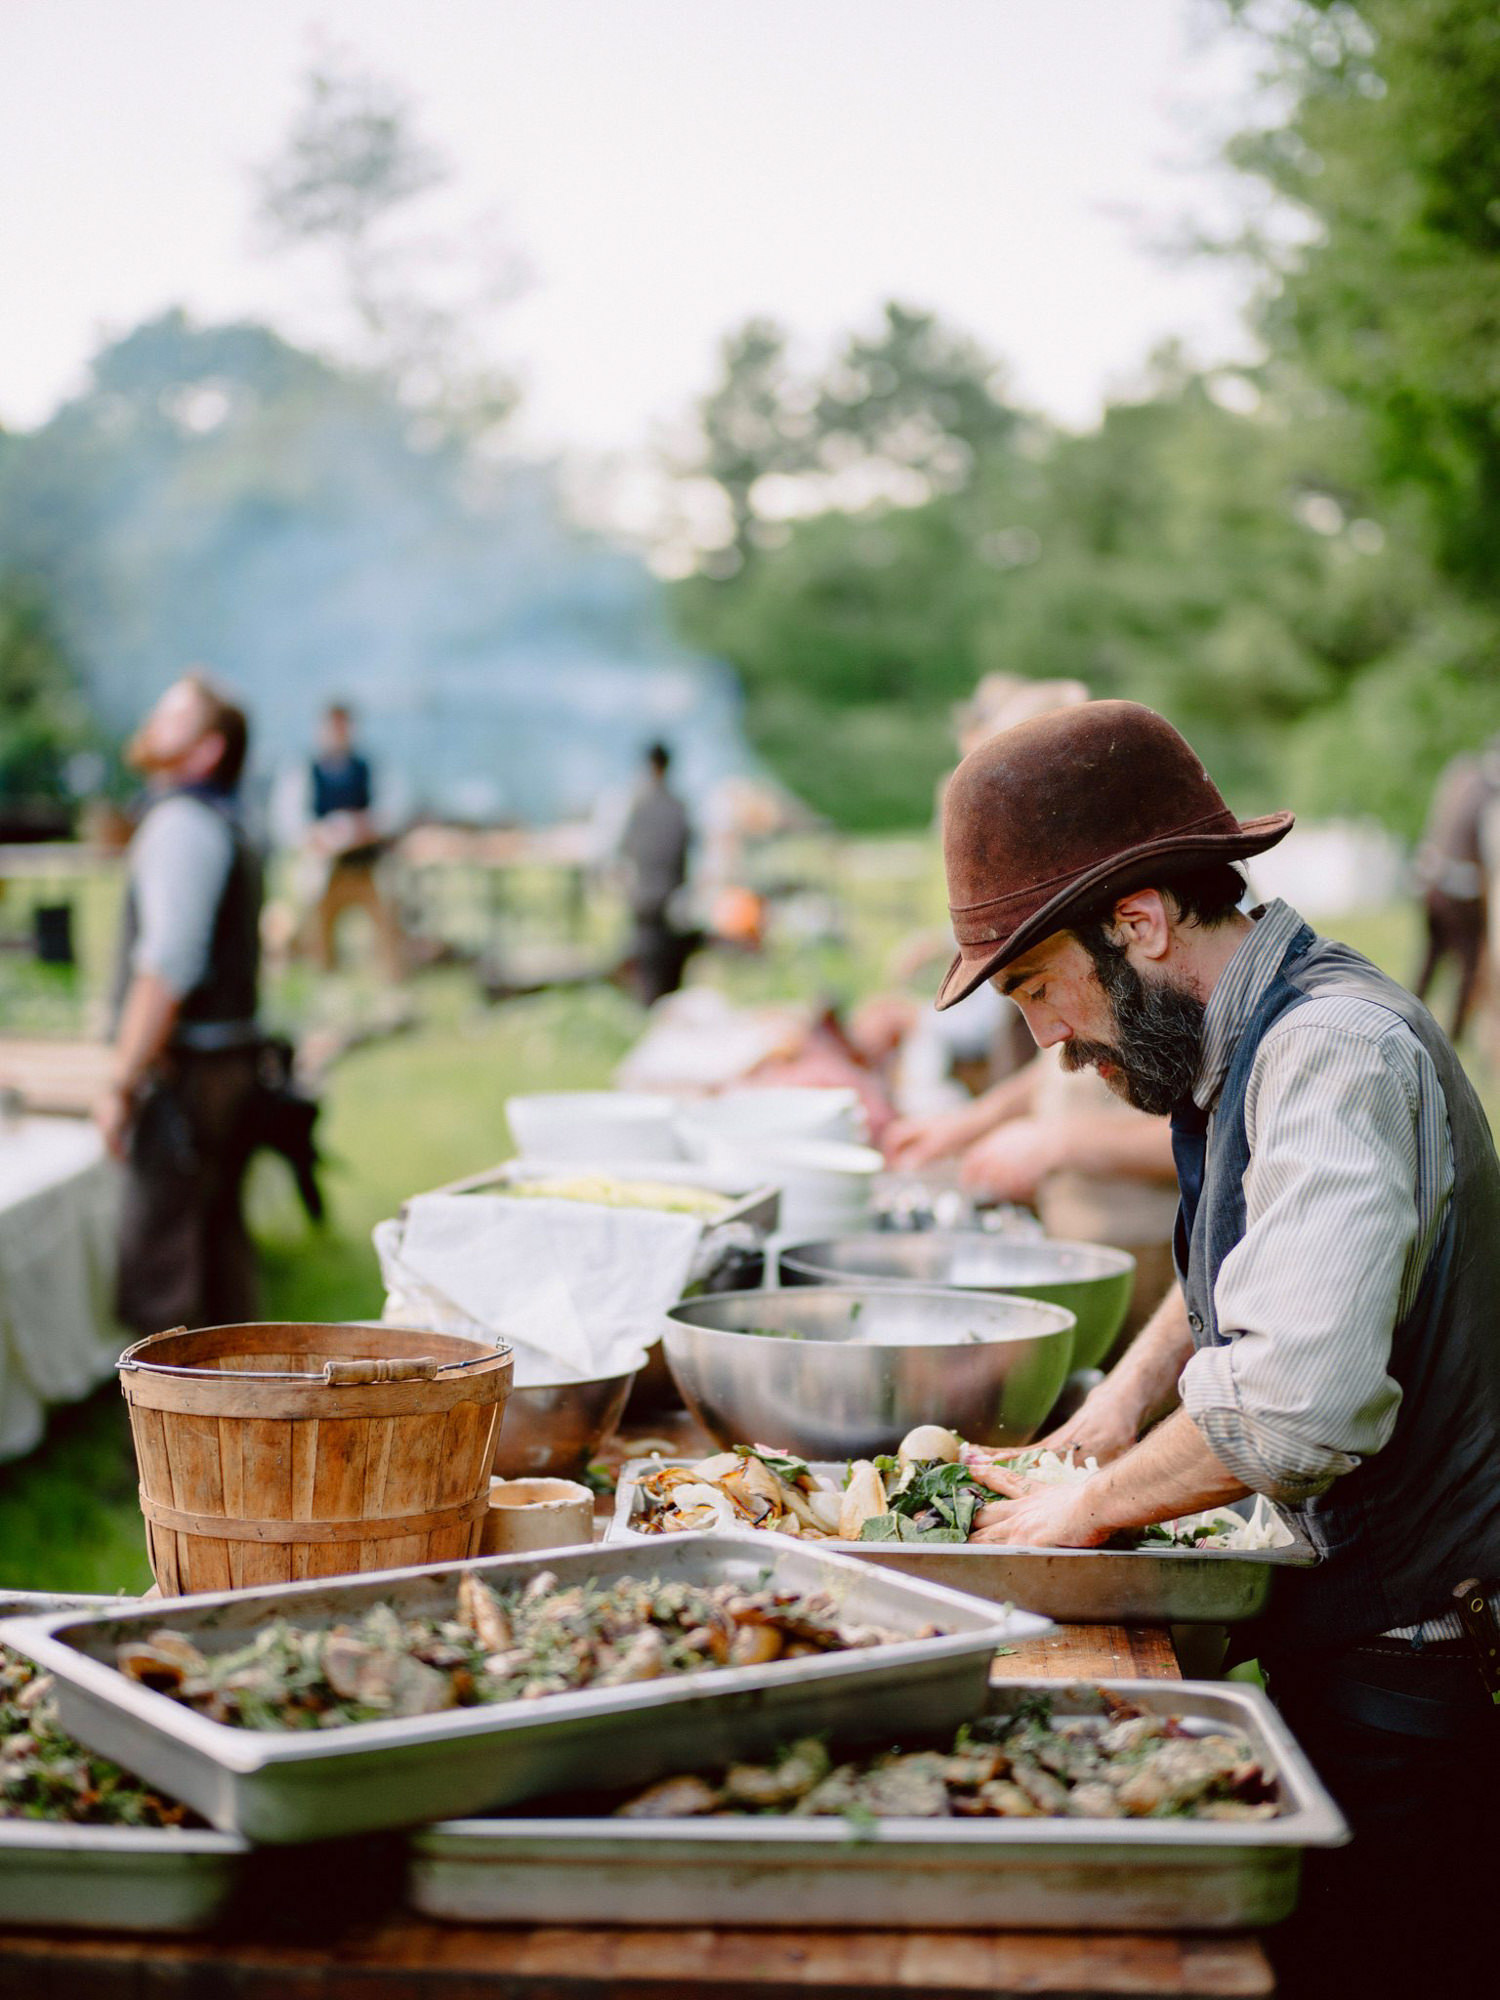 Campout cooking at rustic wedding - photo by Benj Haisch